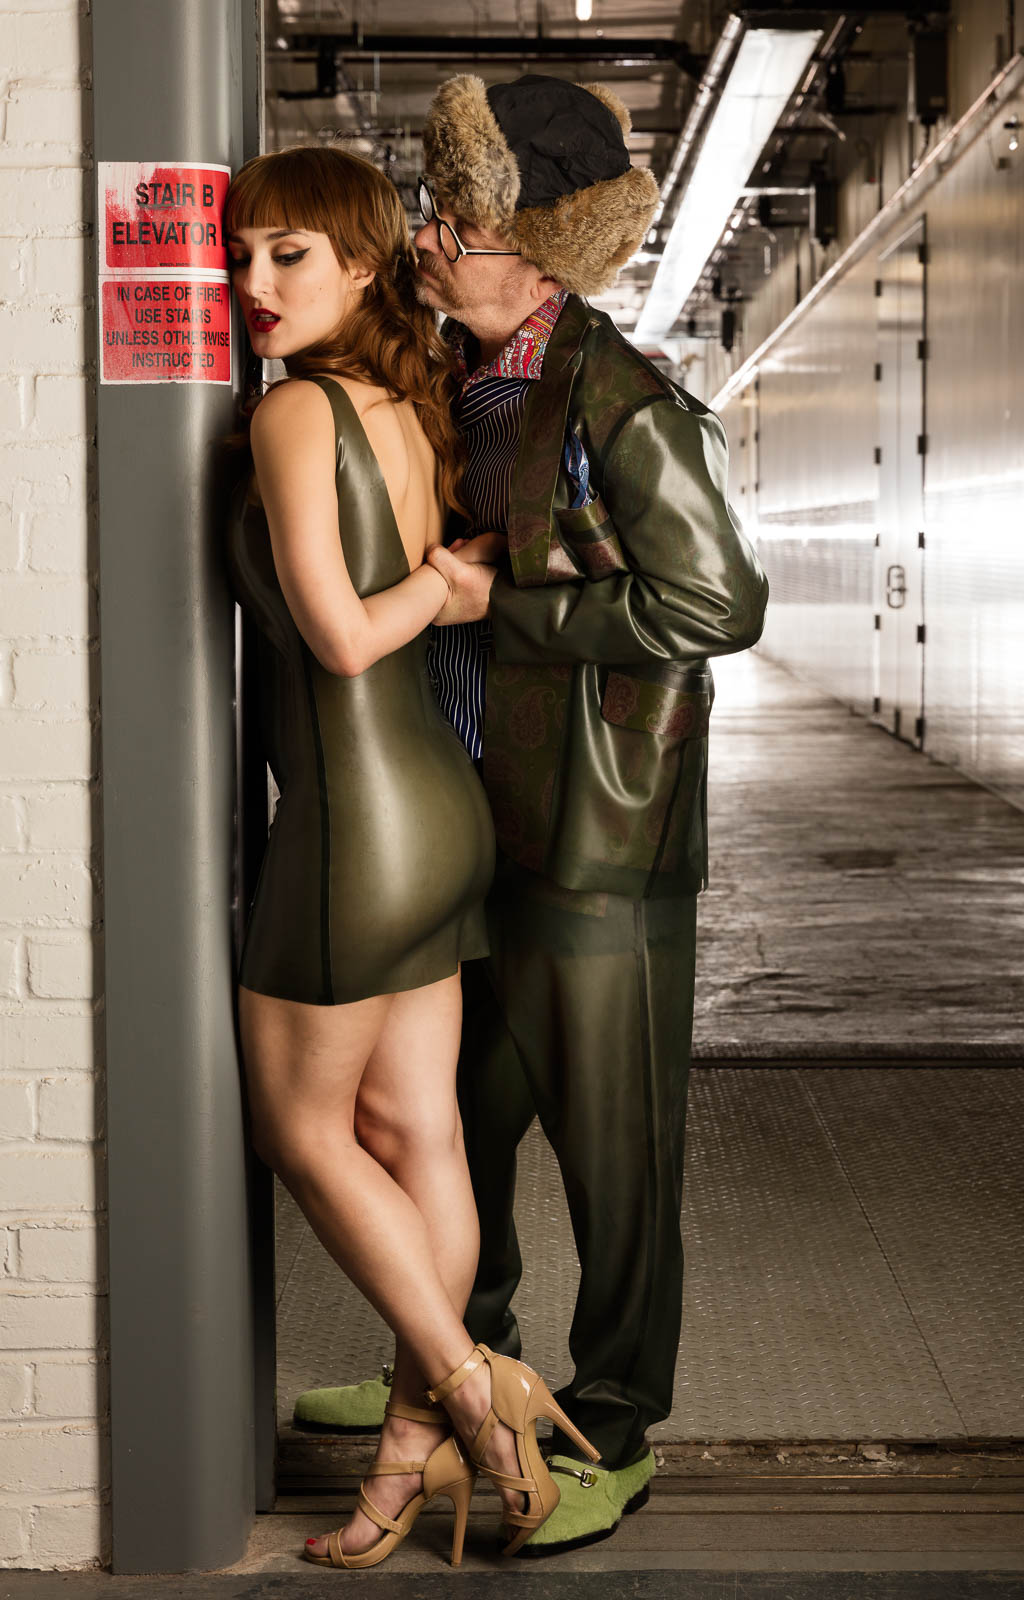 The Latex Jonathan Suit  Latex Rubber Clothing Fetish